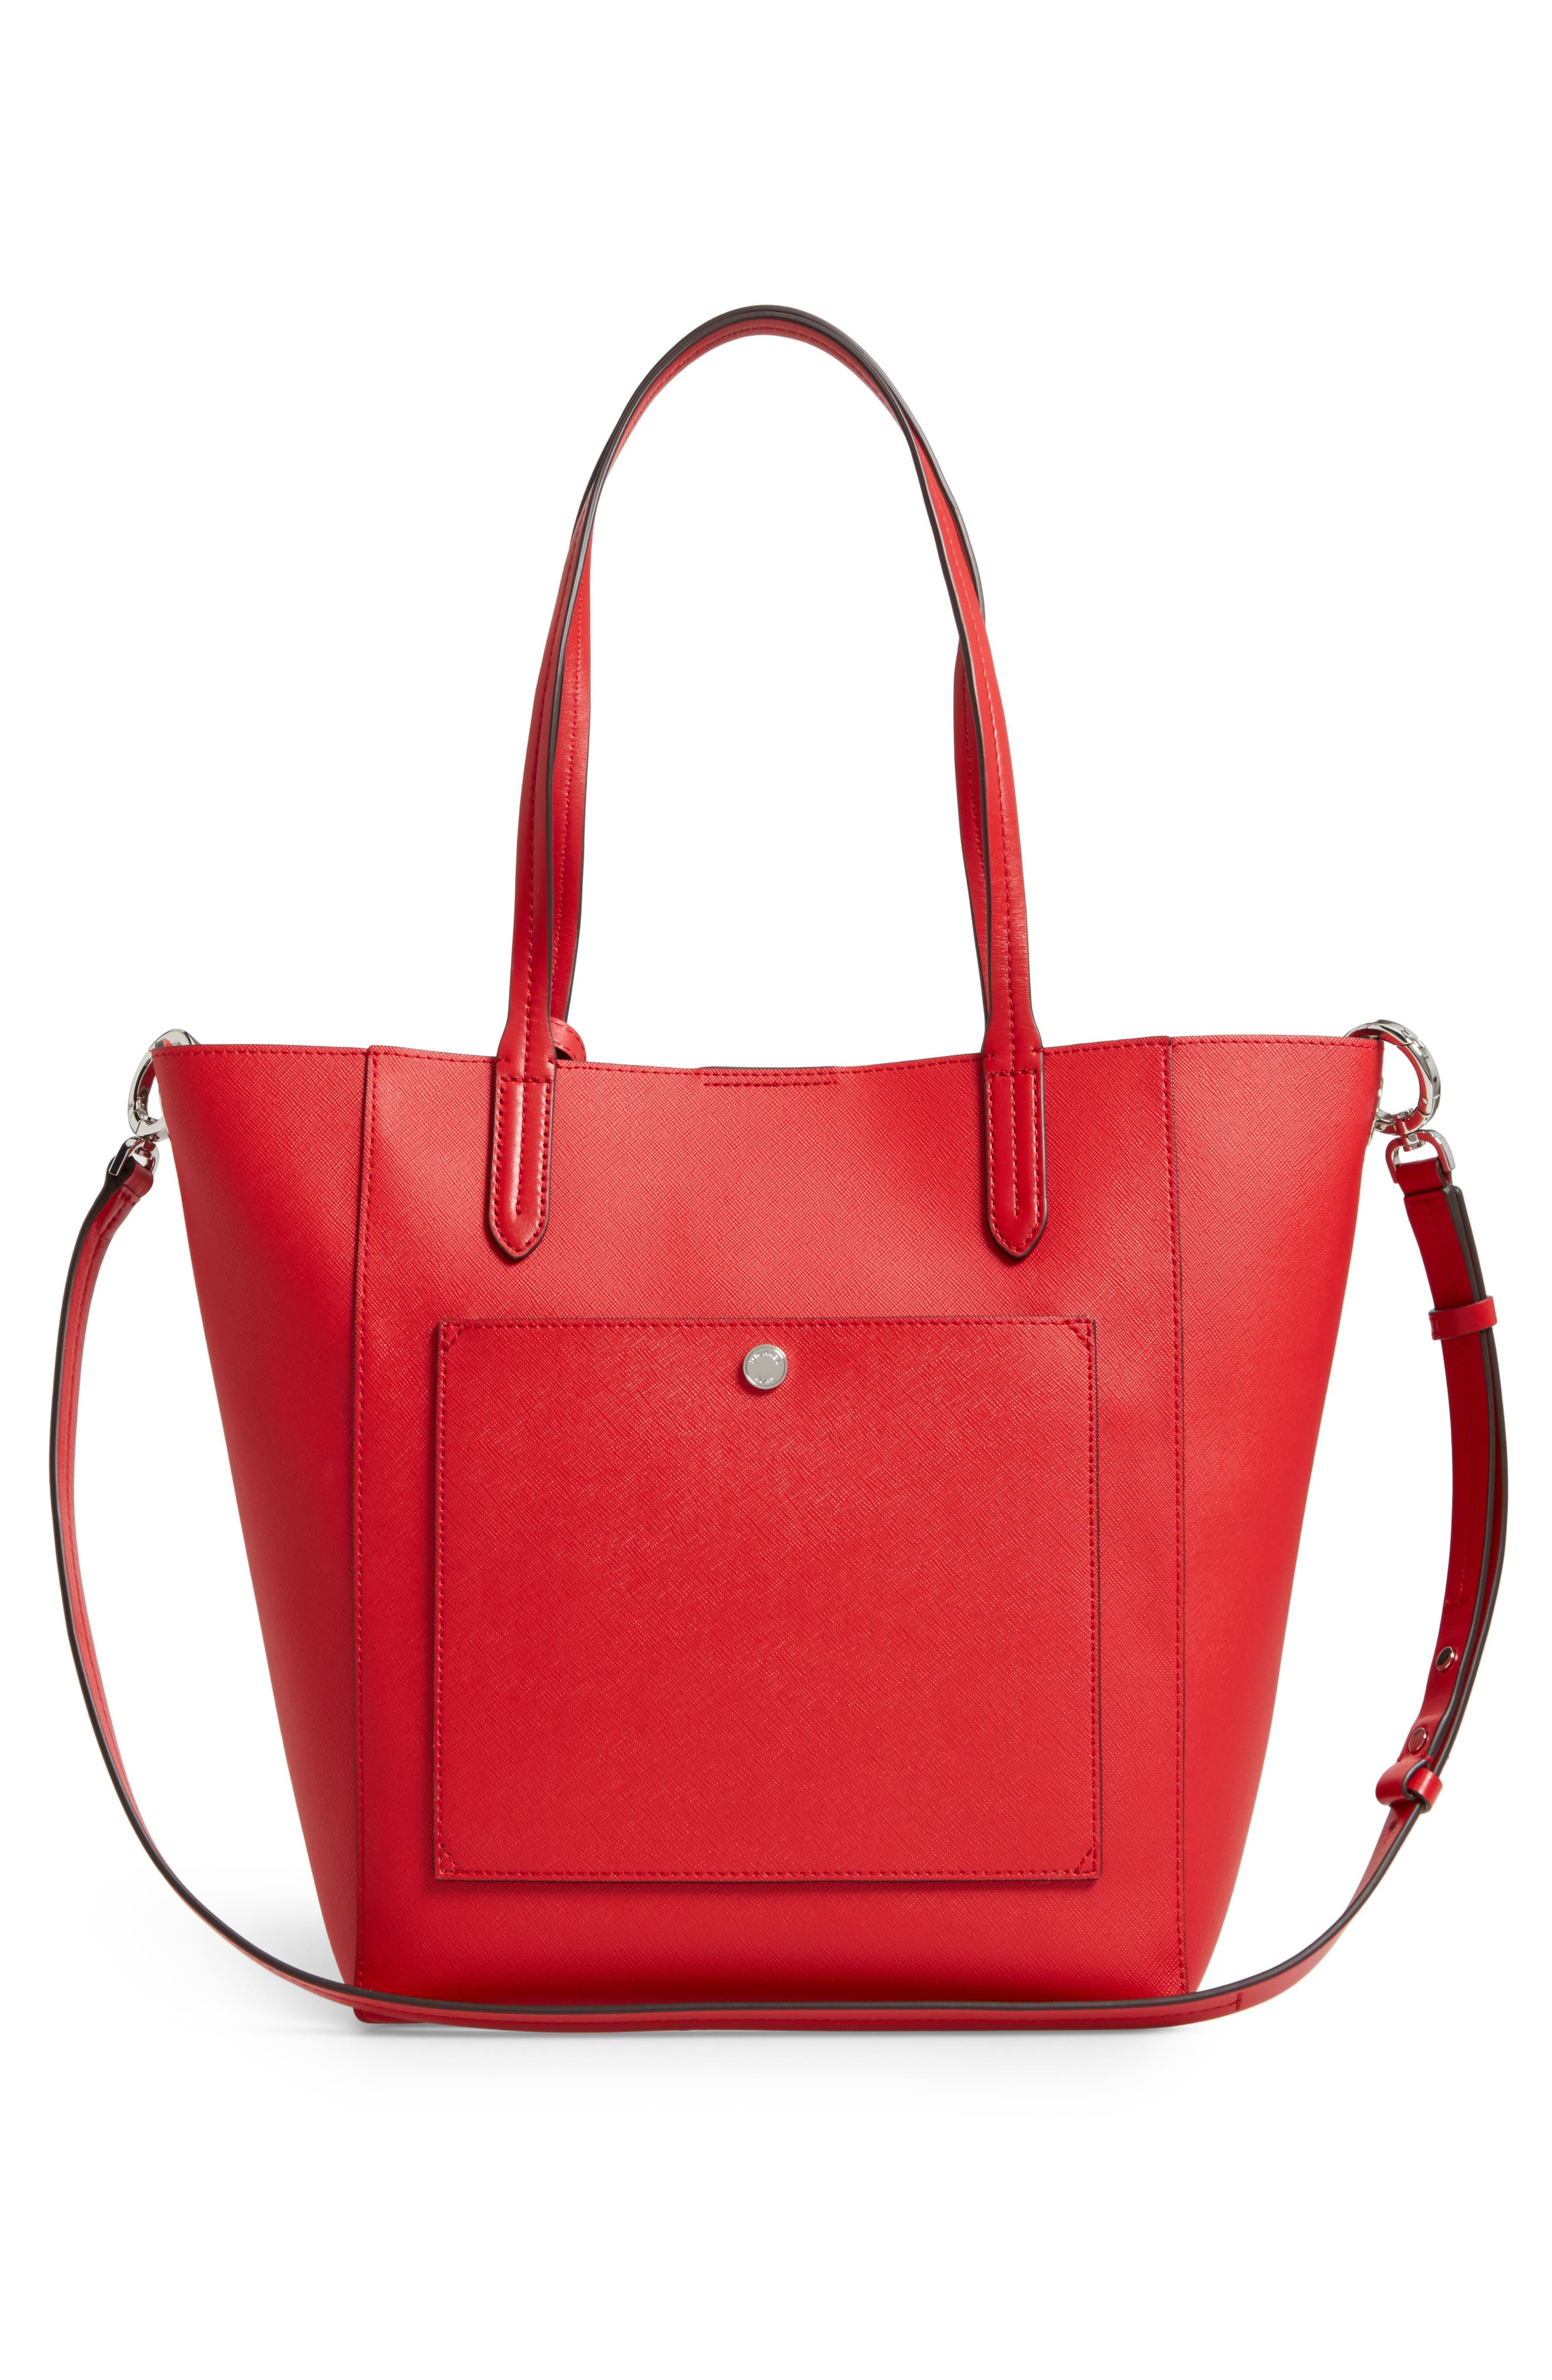 Penny Large Saffiano Convertible Leather Tote,                             Alternate thumbnail 3, color,                             Bright Red